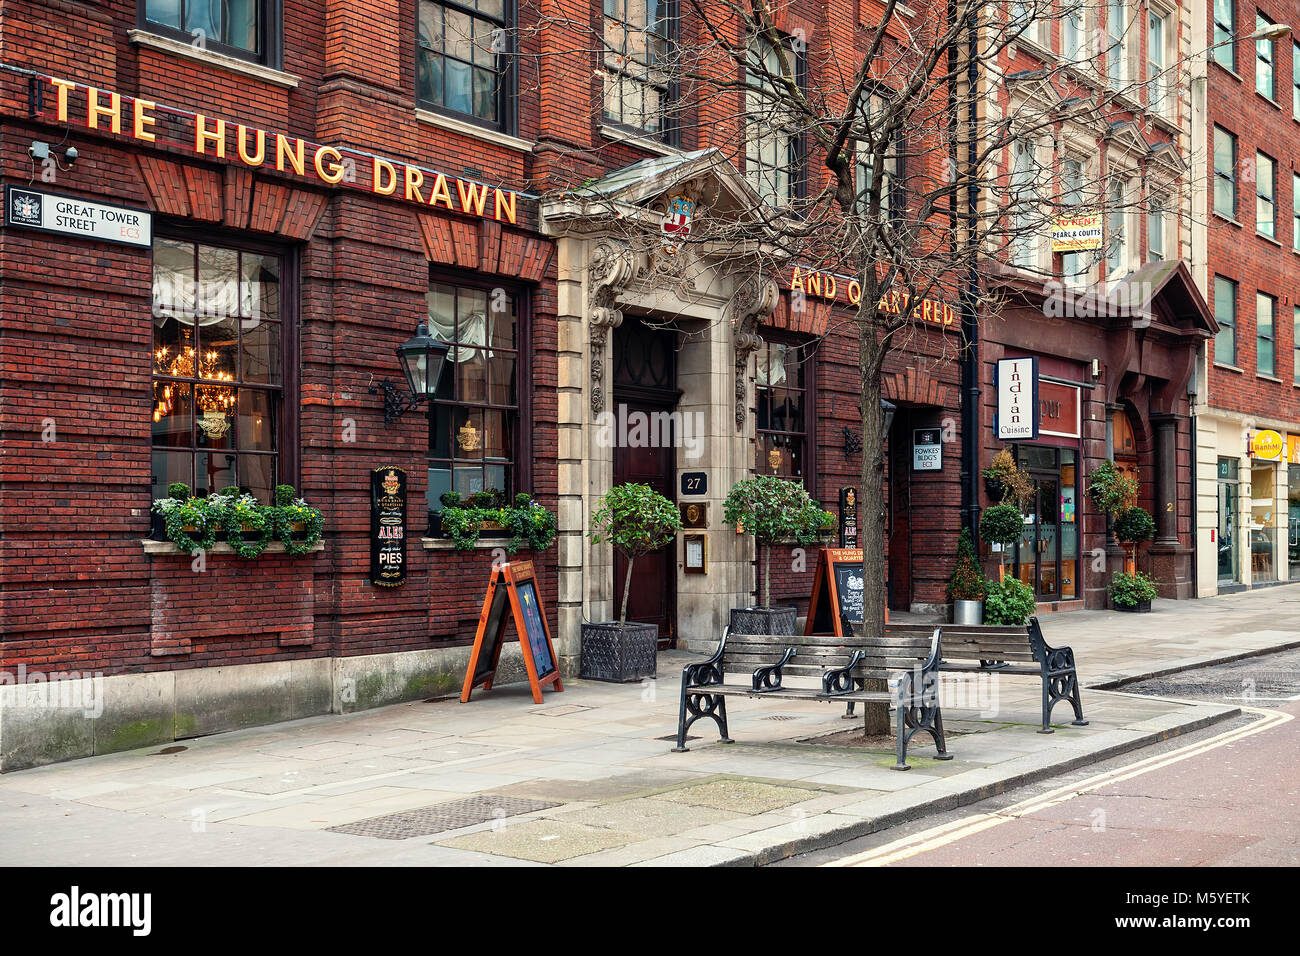 Famous historic Hung Drawn & Quartered pub in London, UK. - Stock Image